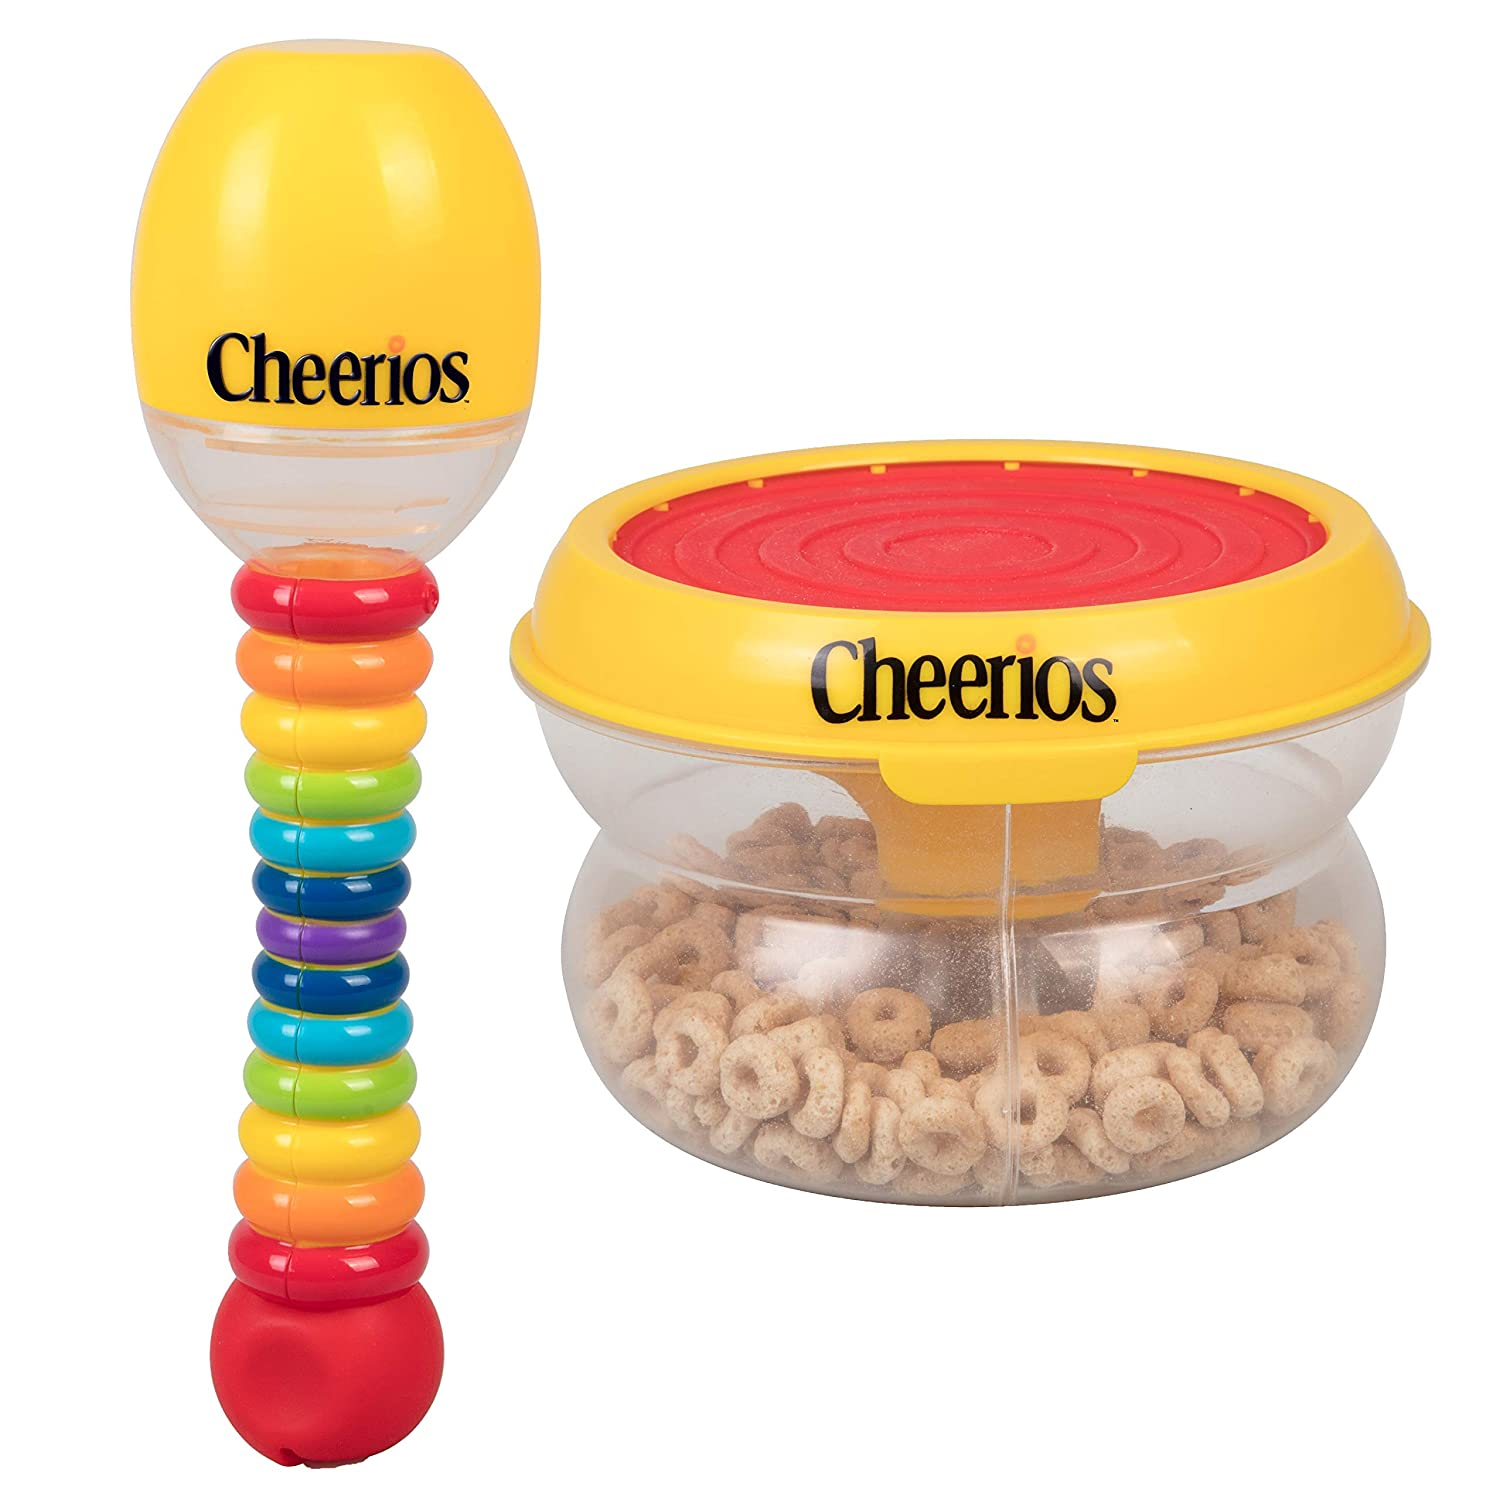 Cheerios Baby Snack Drum Container & Maraca Food Dispenser 2 Pack - Toddler Spill Proof Feeding Containers for Food, Snacks, Cereal - BPA Free, PVC Free, Dishwasher Safe